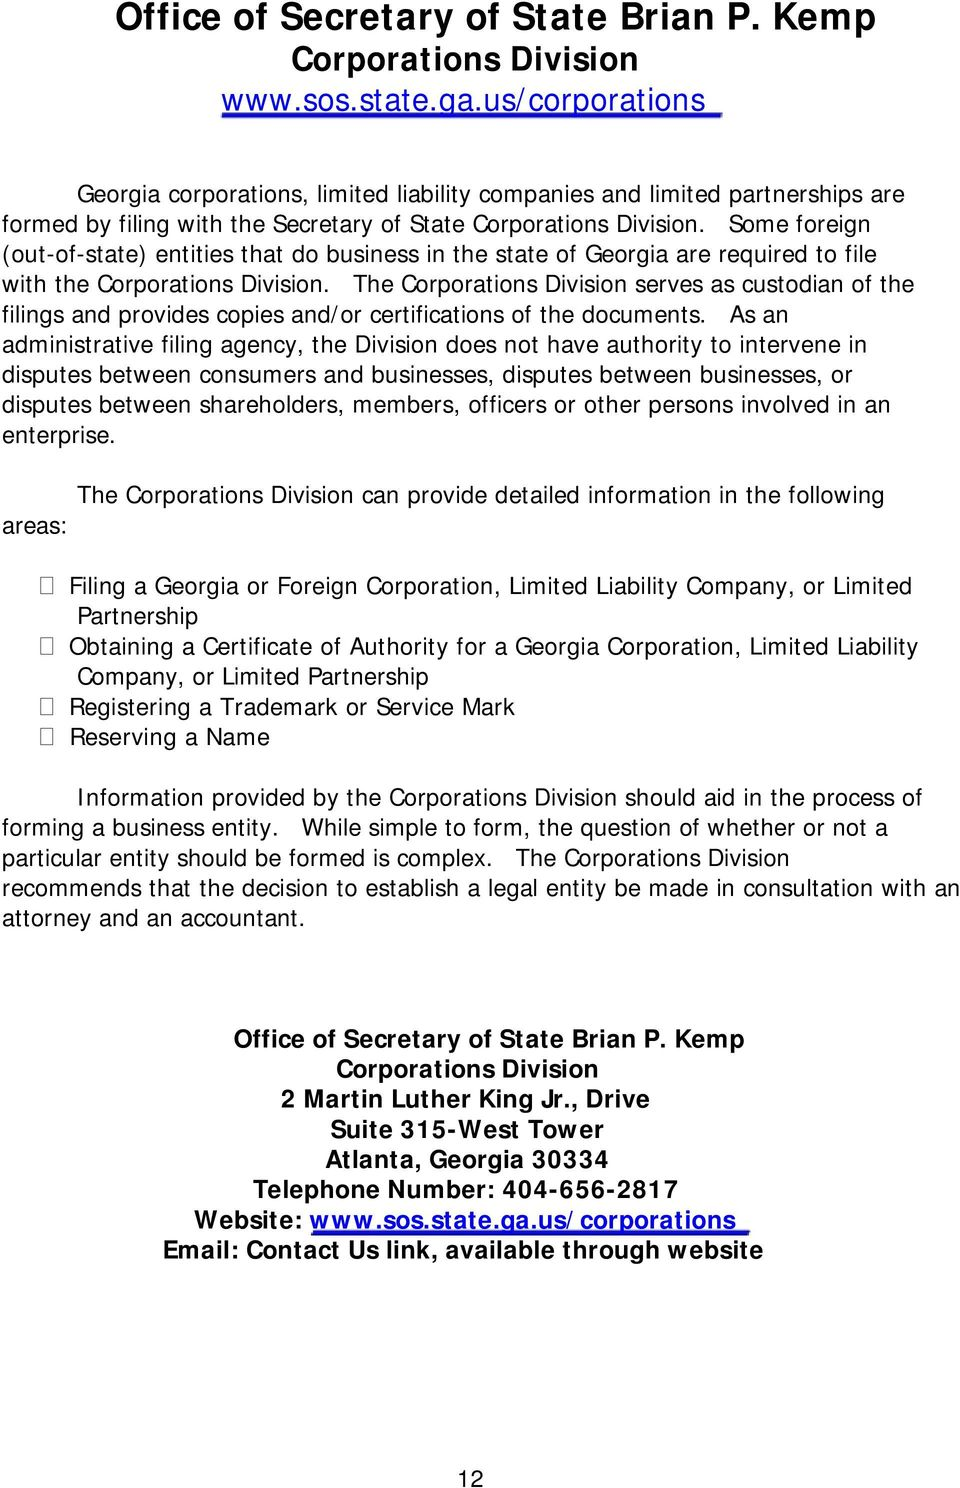 Some foreign (out-of-state) entities that do business in the state of Georgia are required to file with the Corporations Division.